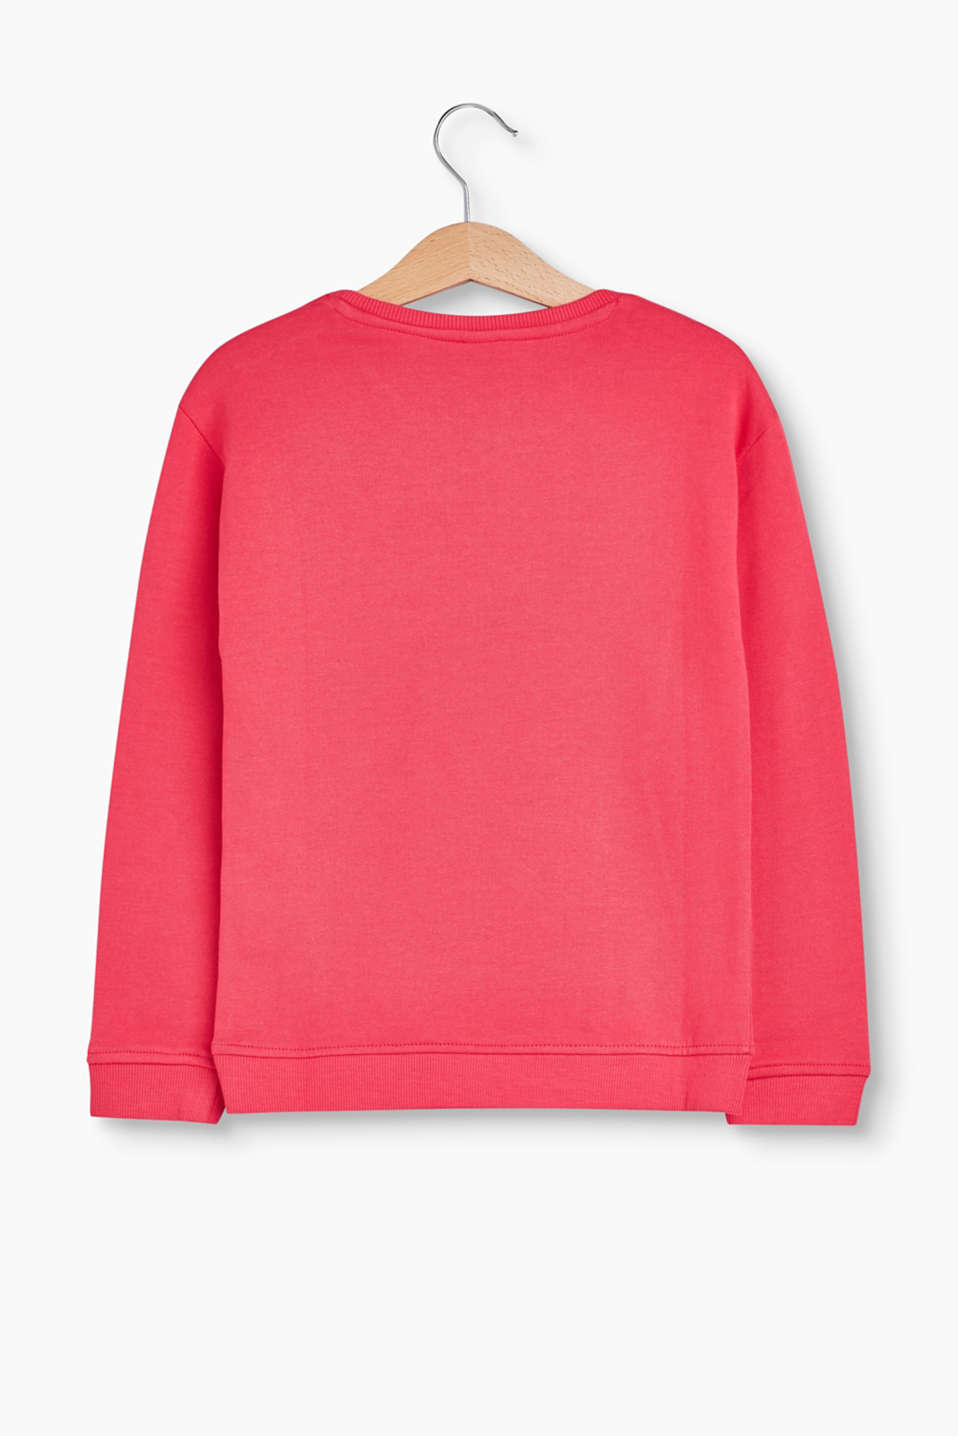 Sweat-shirt en coton, paillettes réversibles